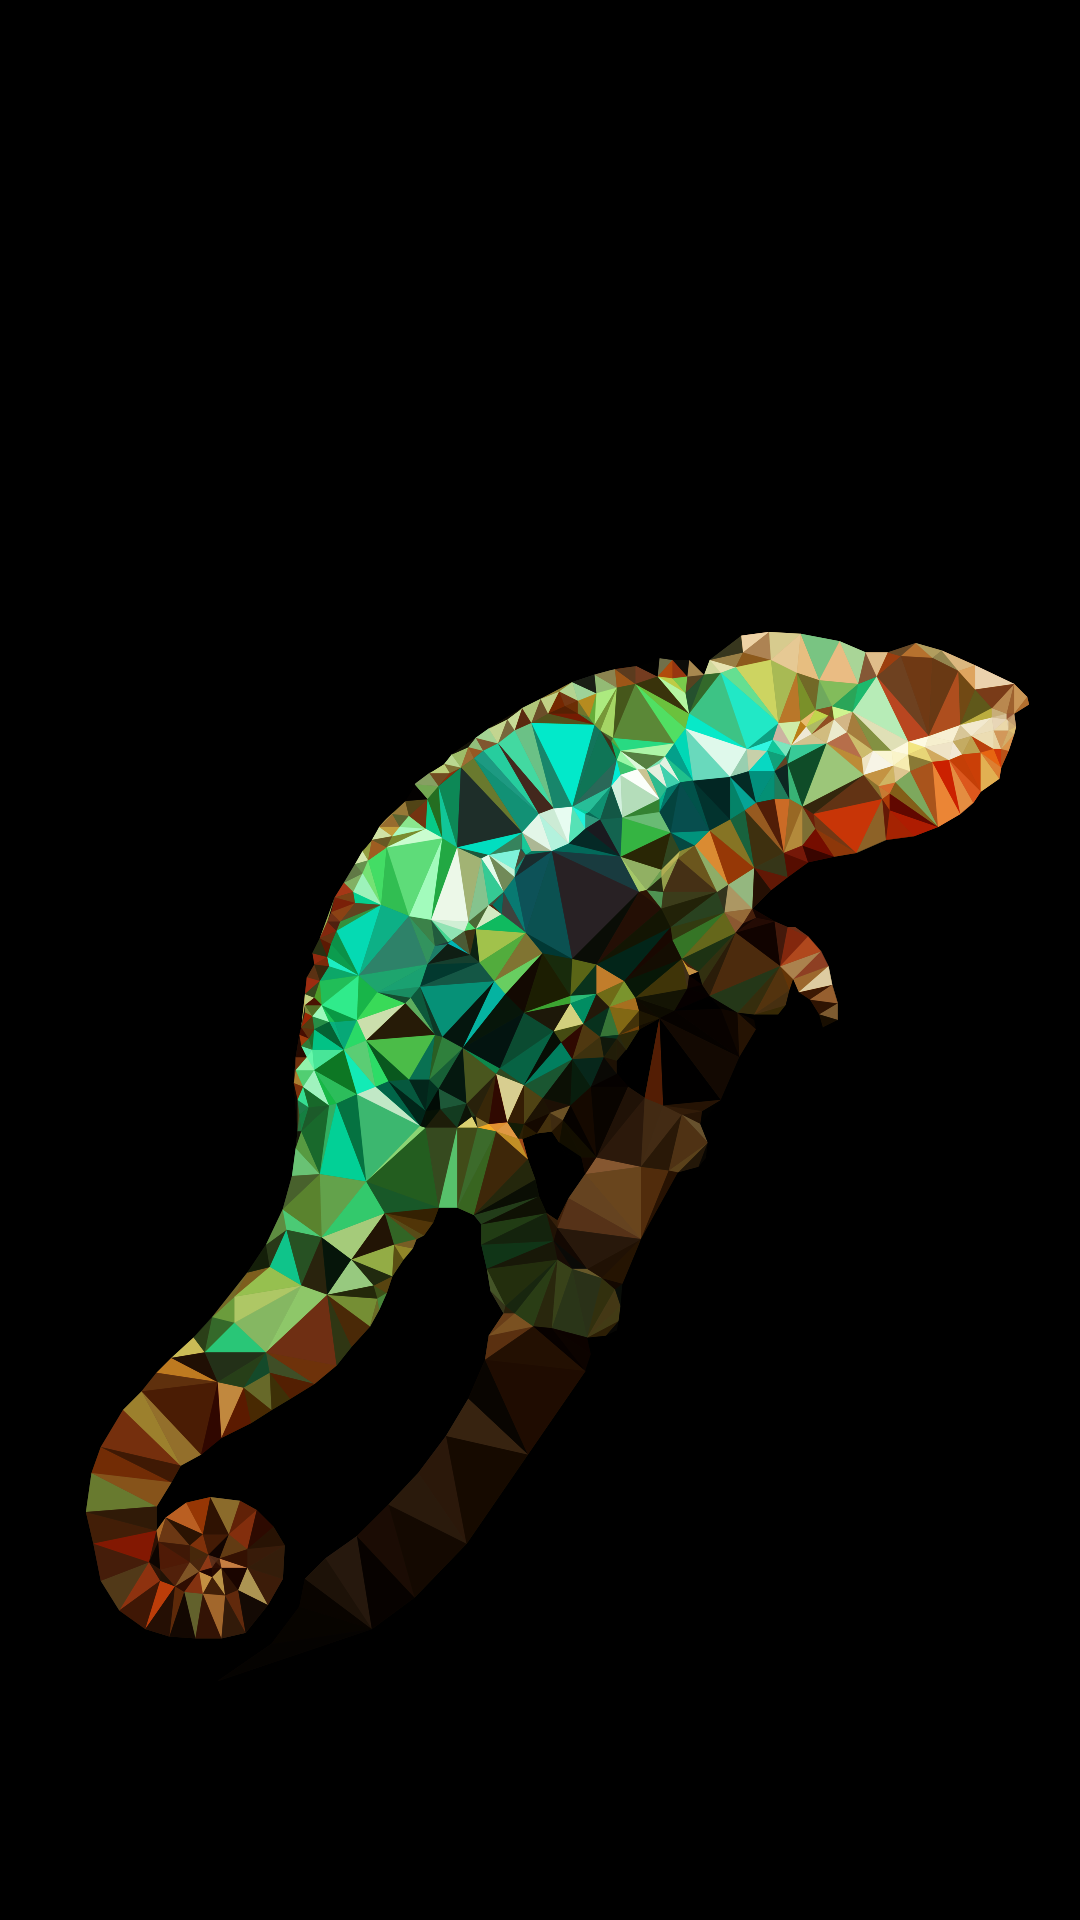 Chameleon 1080x1920 Need Iphone 6s Plus Wallpaper